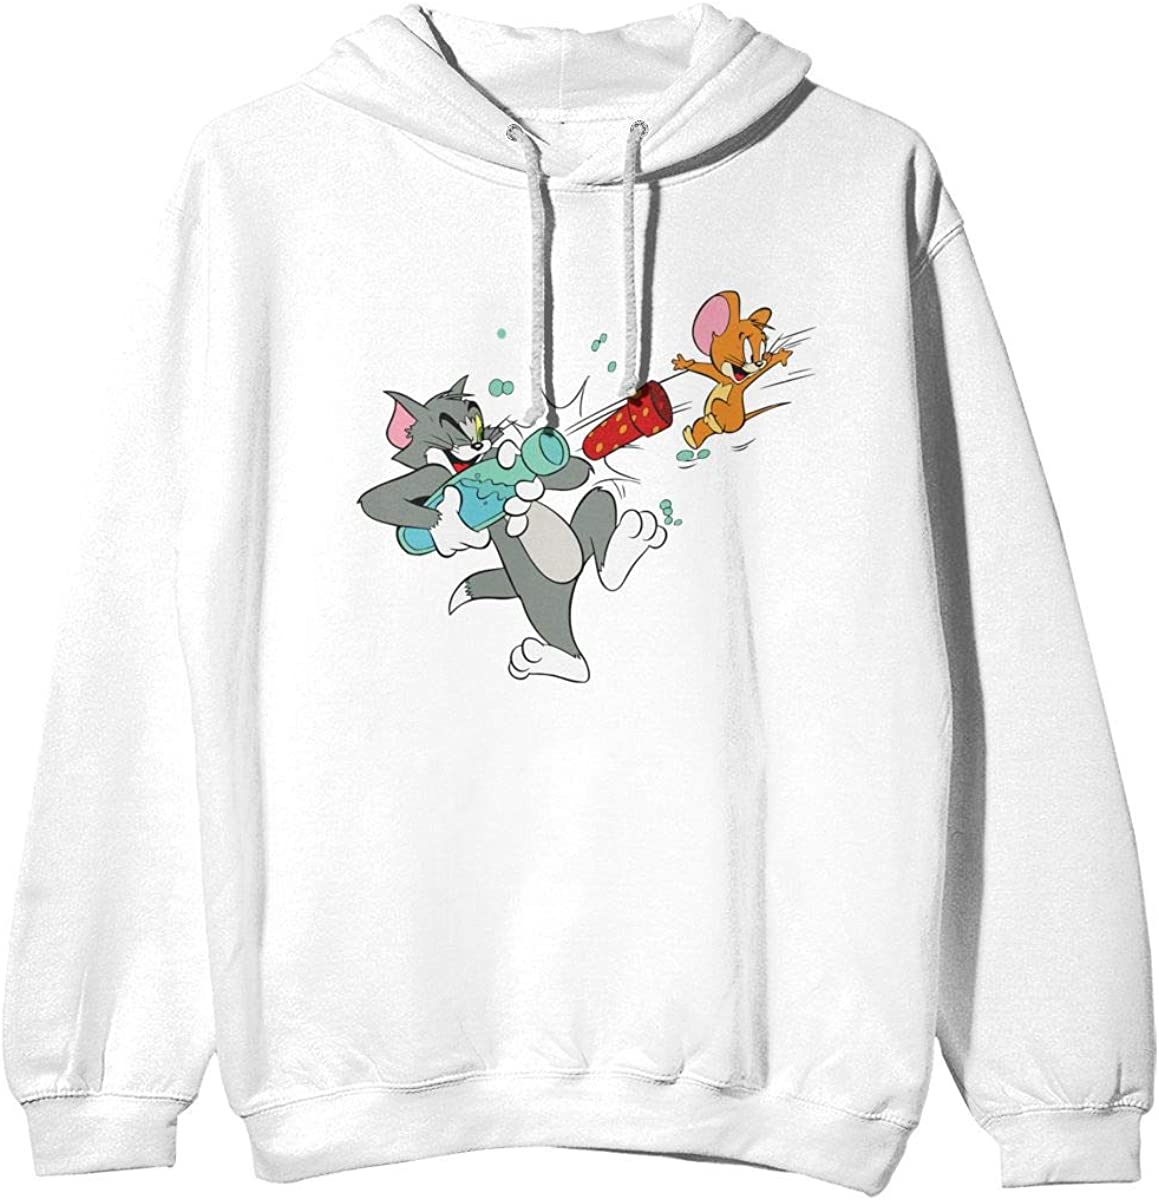 Details about  /Tom and Jerry Character Chasing Hoodie Novelty Pullover Men Women Unisex V314